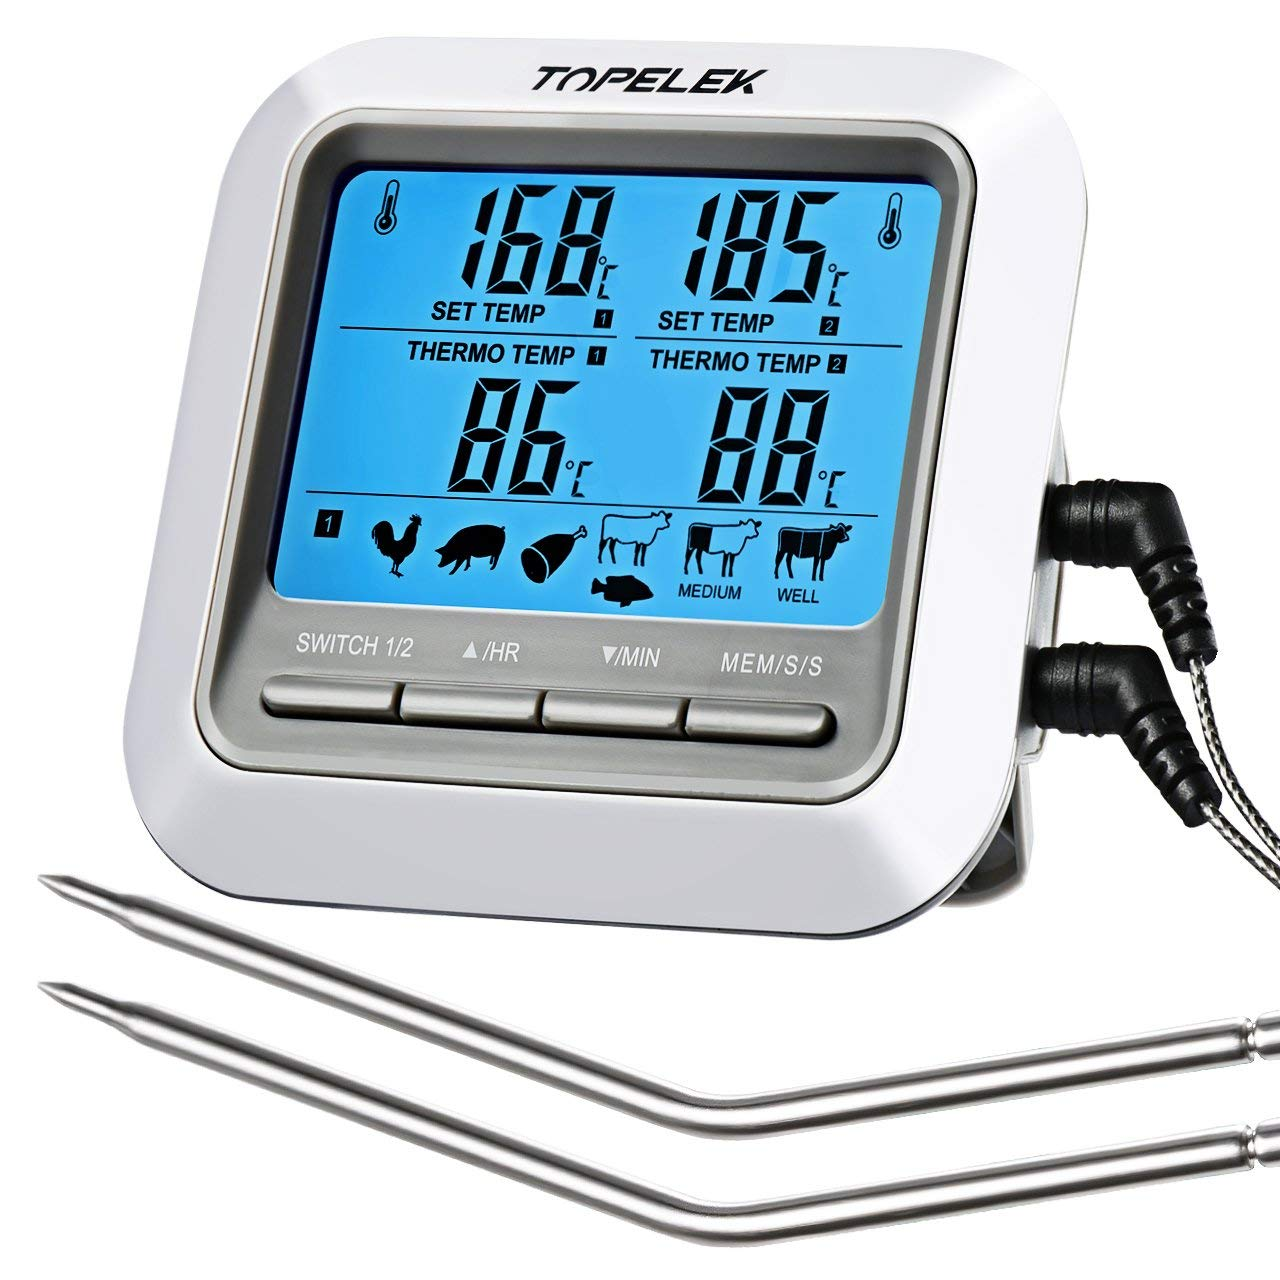 Grillthermometer amazon